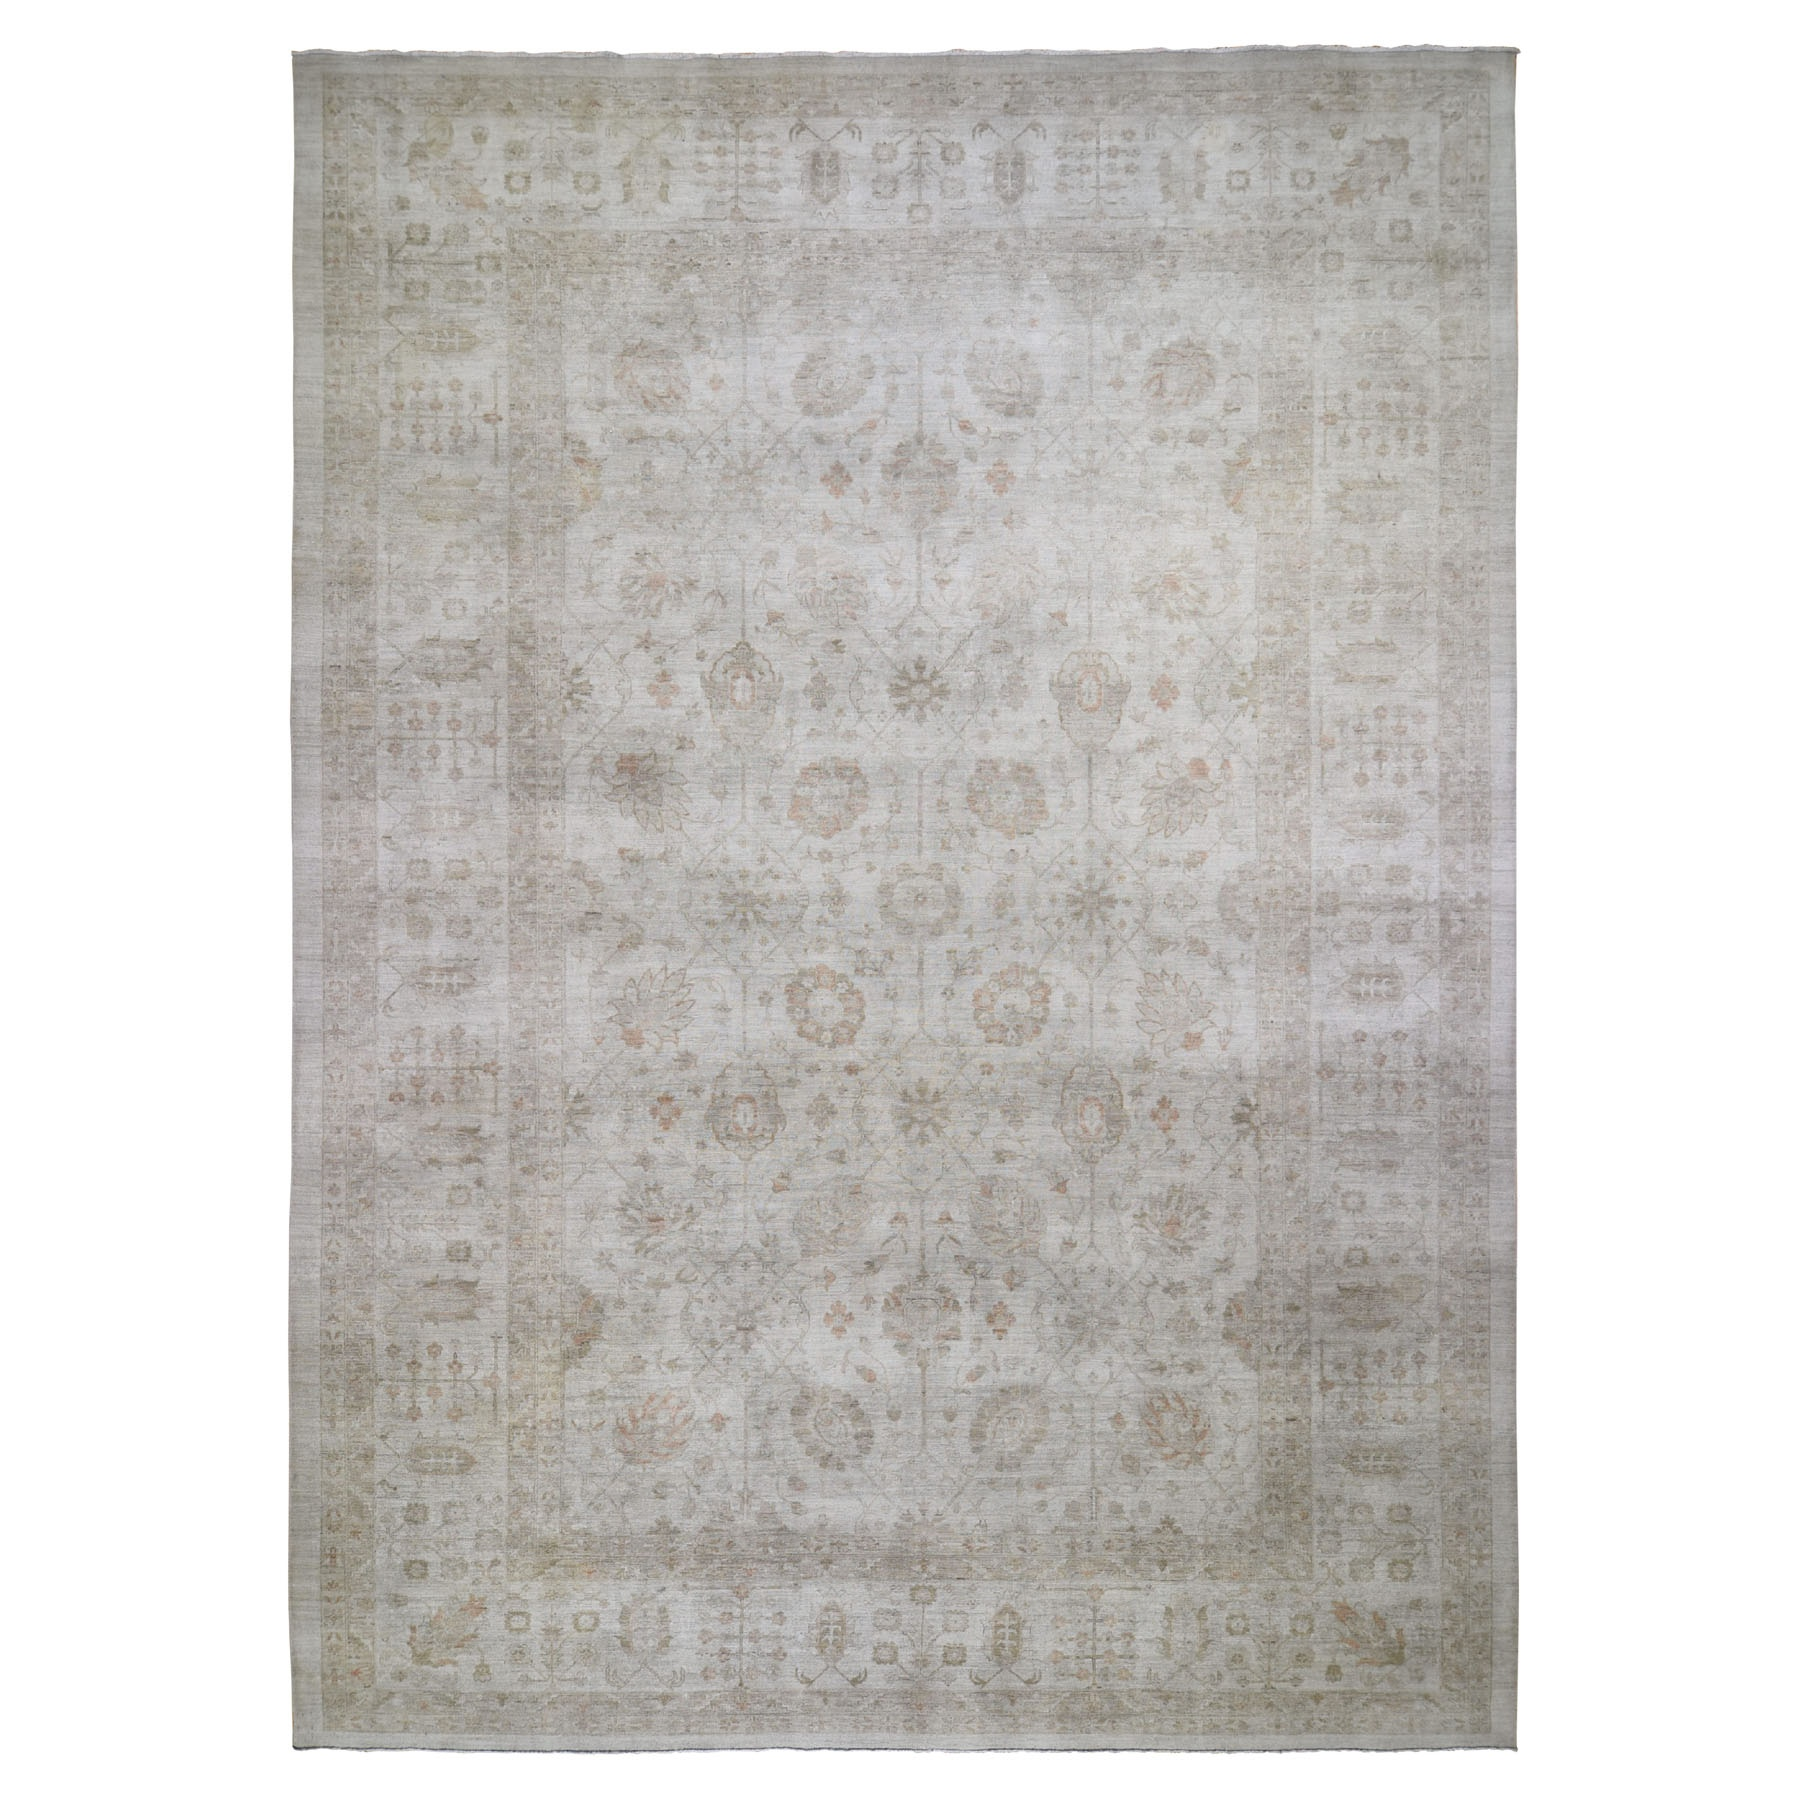 Deep discounted Collection Hand Knotted Grey Rug No: 196544